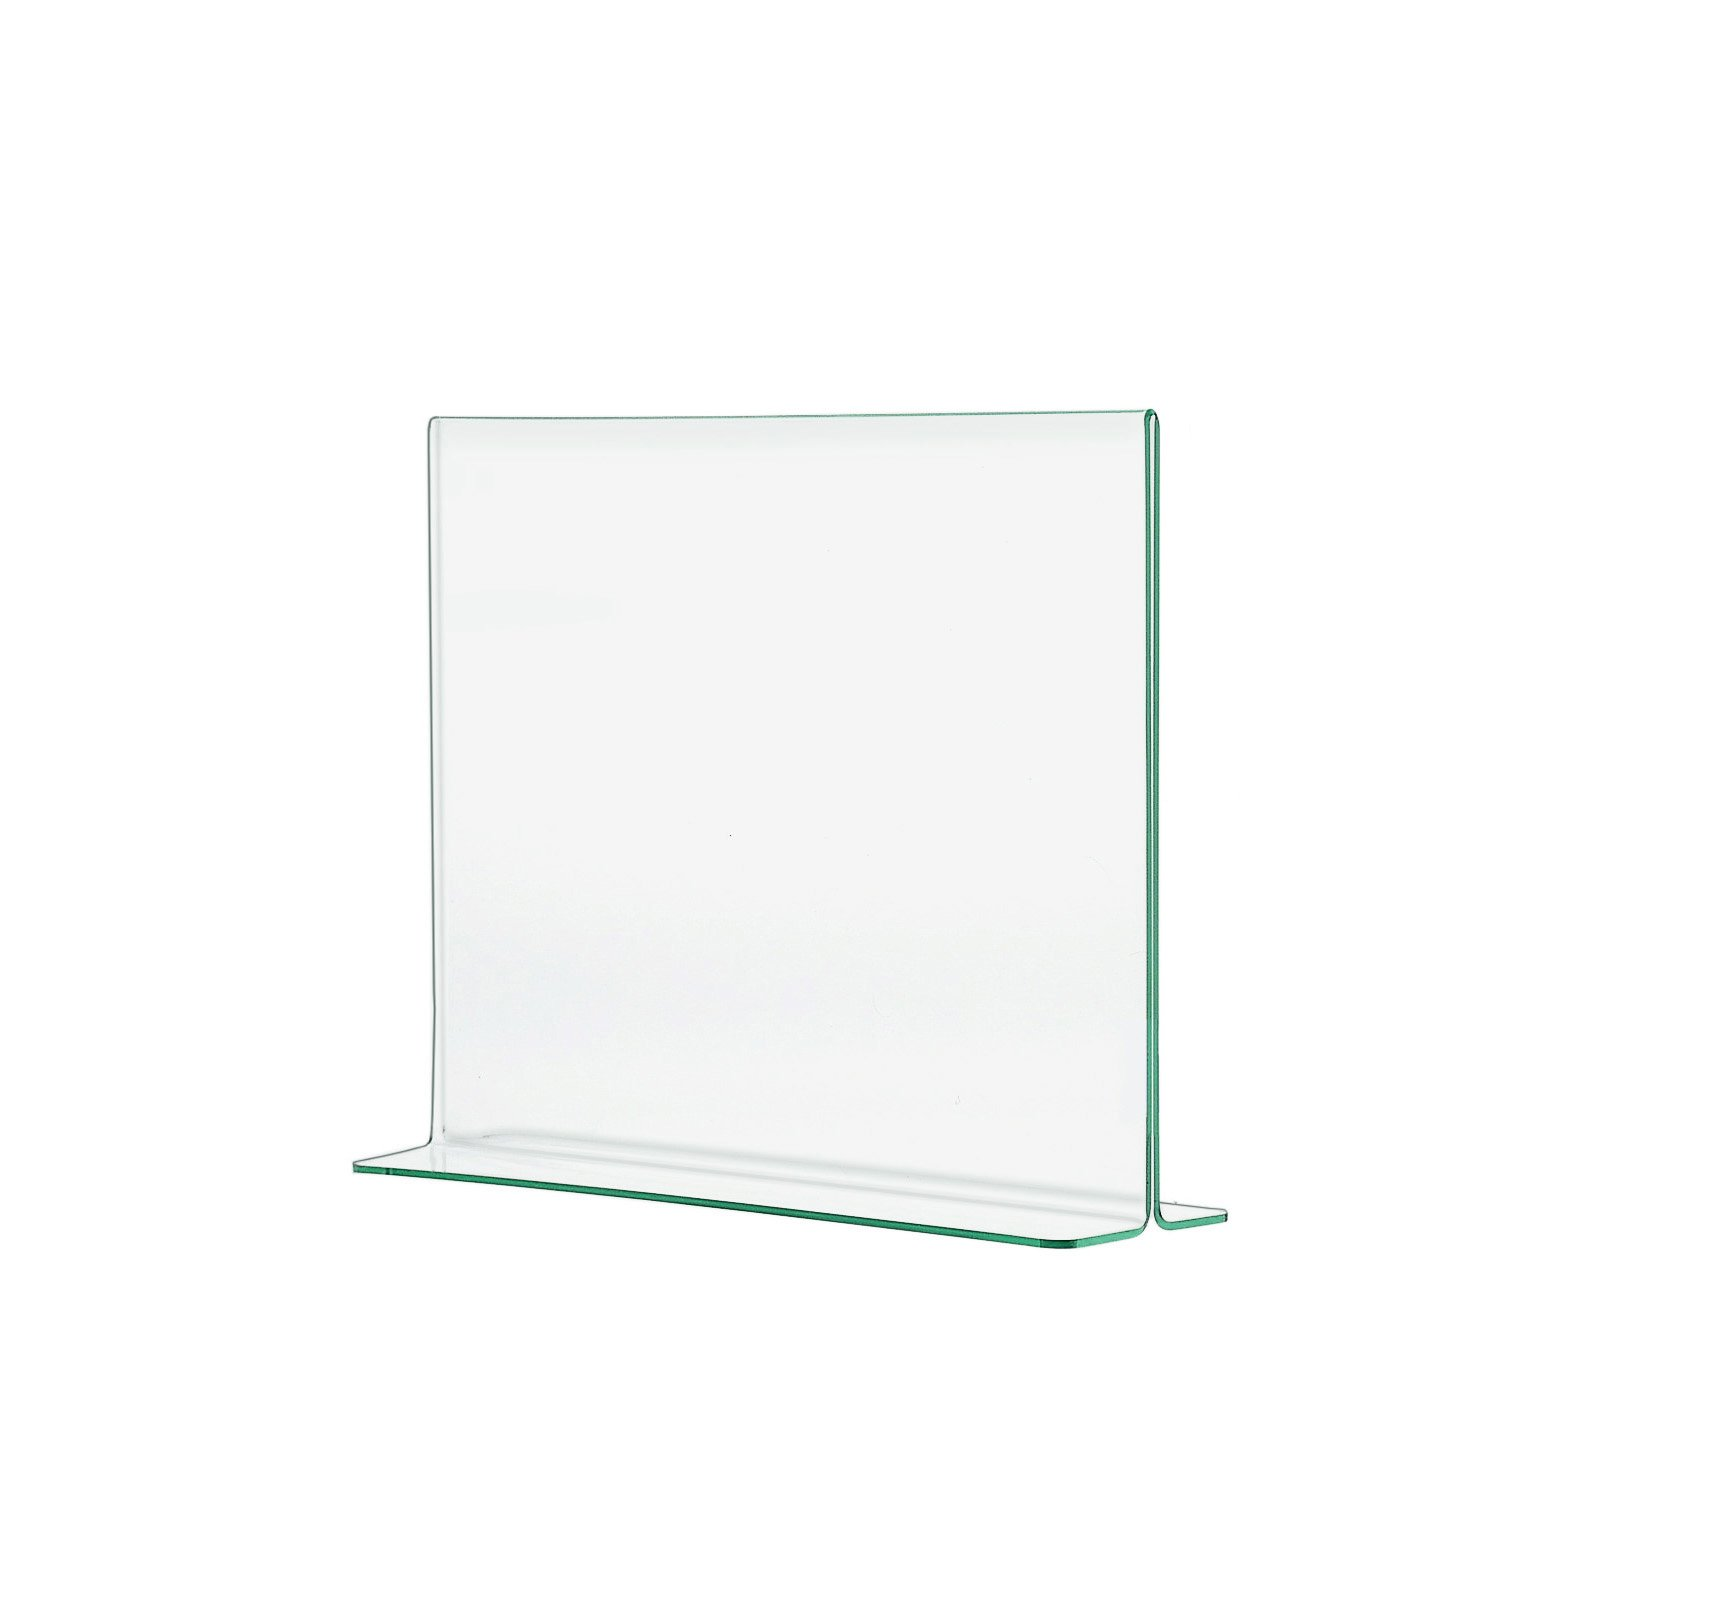 Marketing Holders Superior Image or Literature Frame Counter Table Premium Green Edge Ad Menu Poster Flyer Sign Holder 11''w x 8.5''h Qty 6